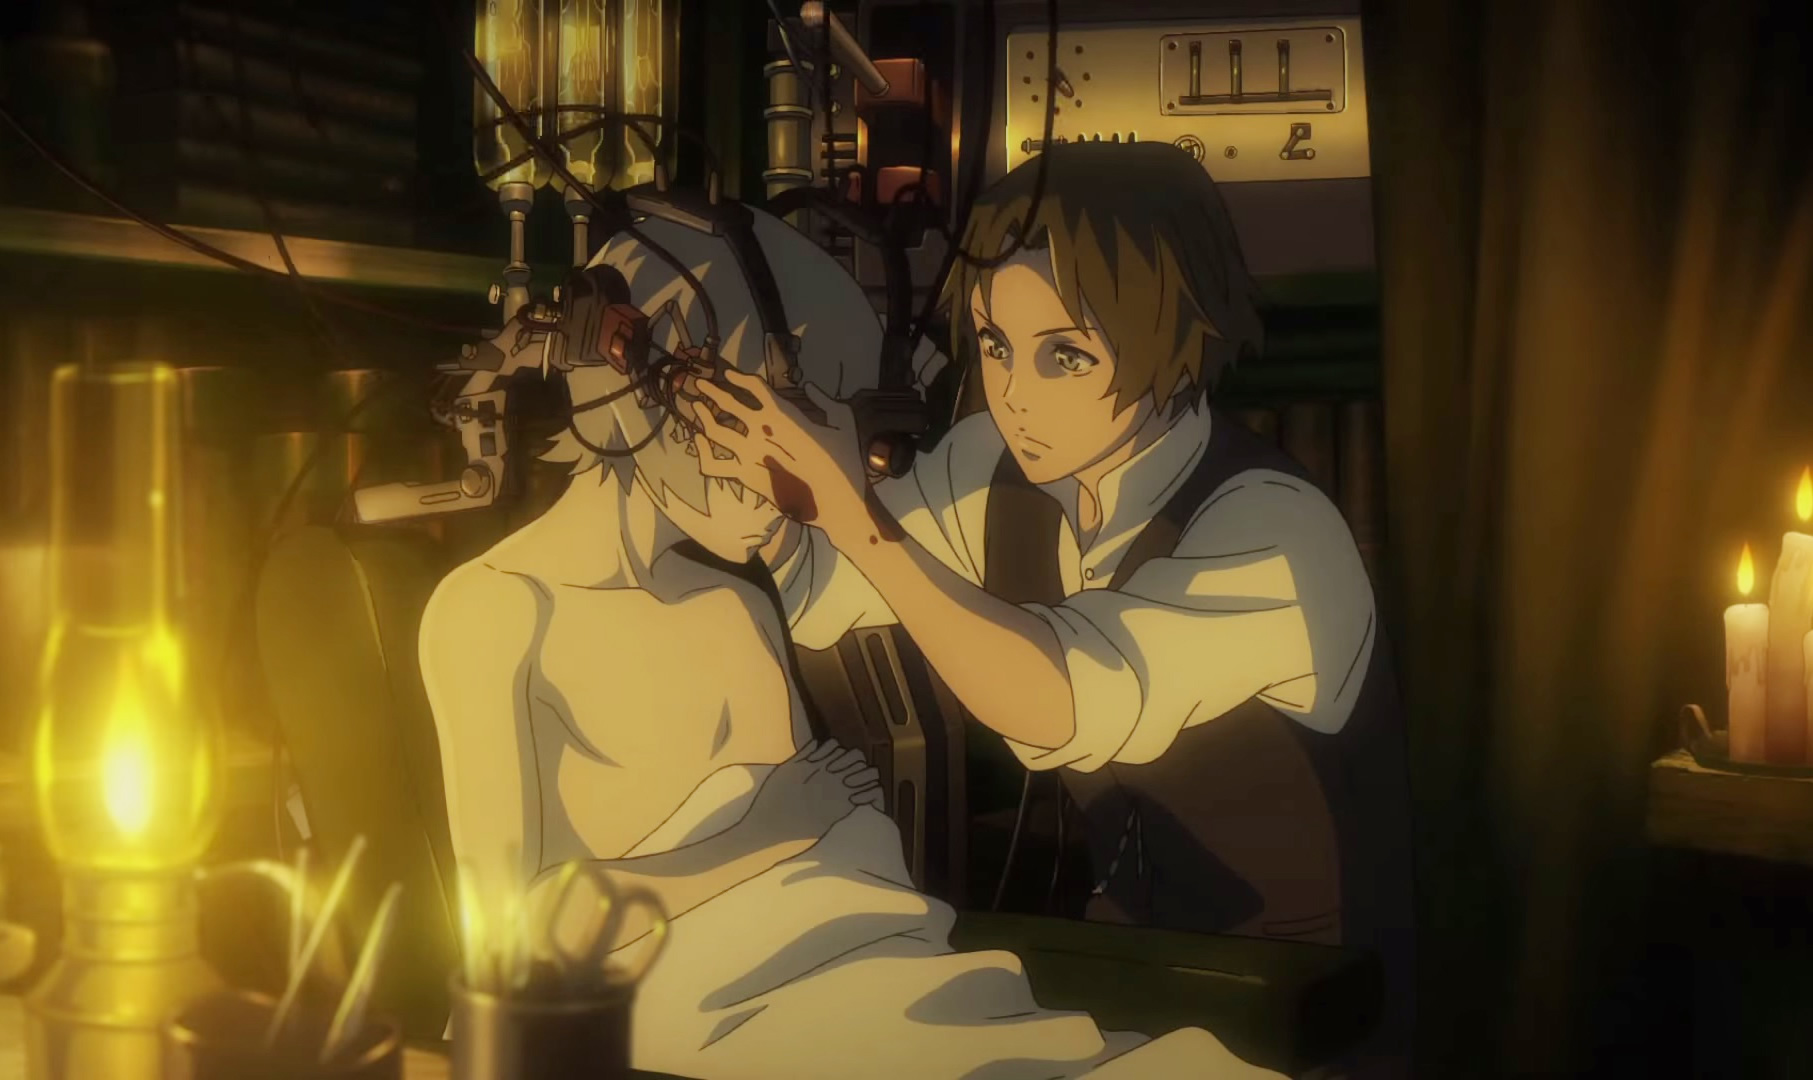 doctor treating patient in the The Empire of Corpses